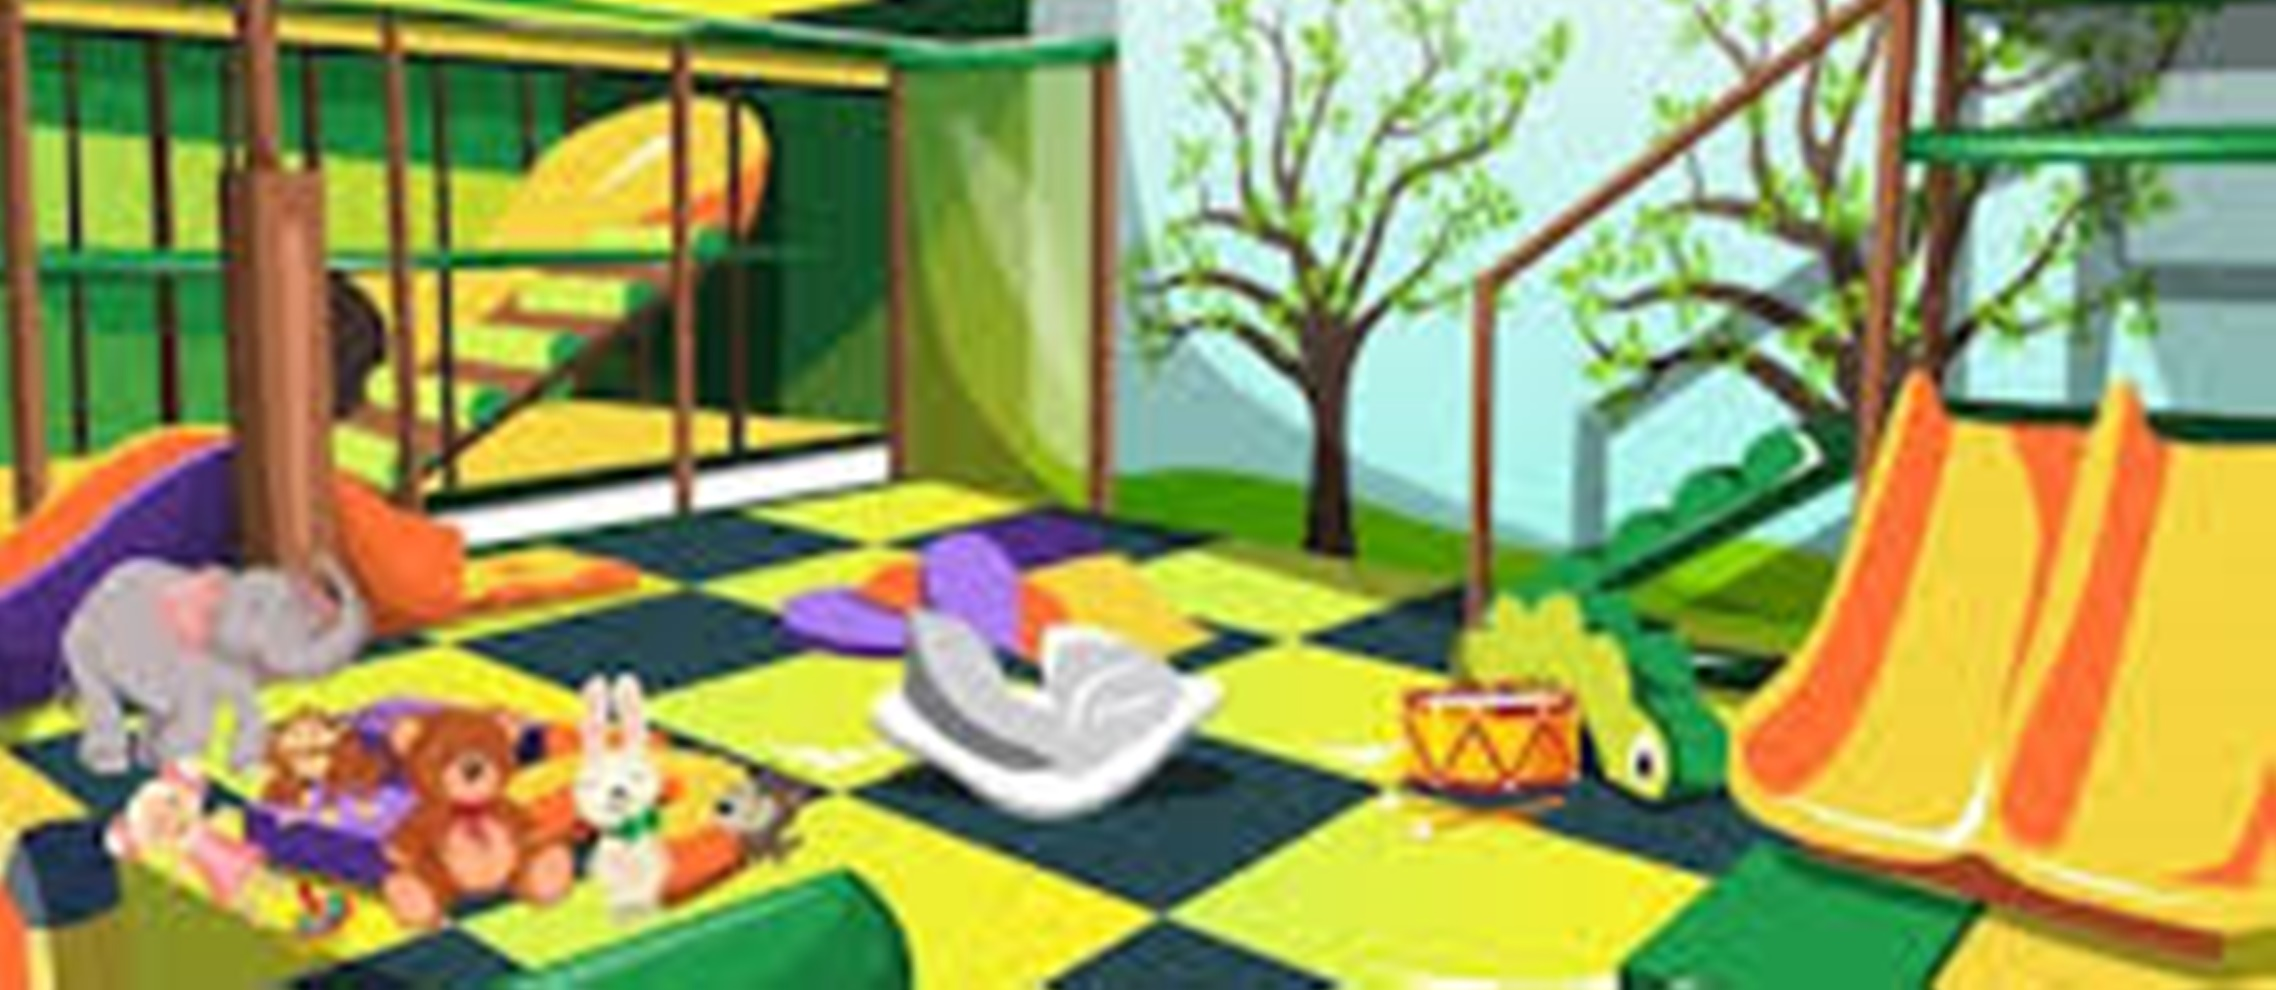 Indoor playground , birthday , art and craft business near jurong Mrt | For Sale | Look For Buyer - Business for Sale, Buy a Ready Business